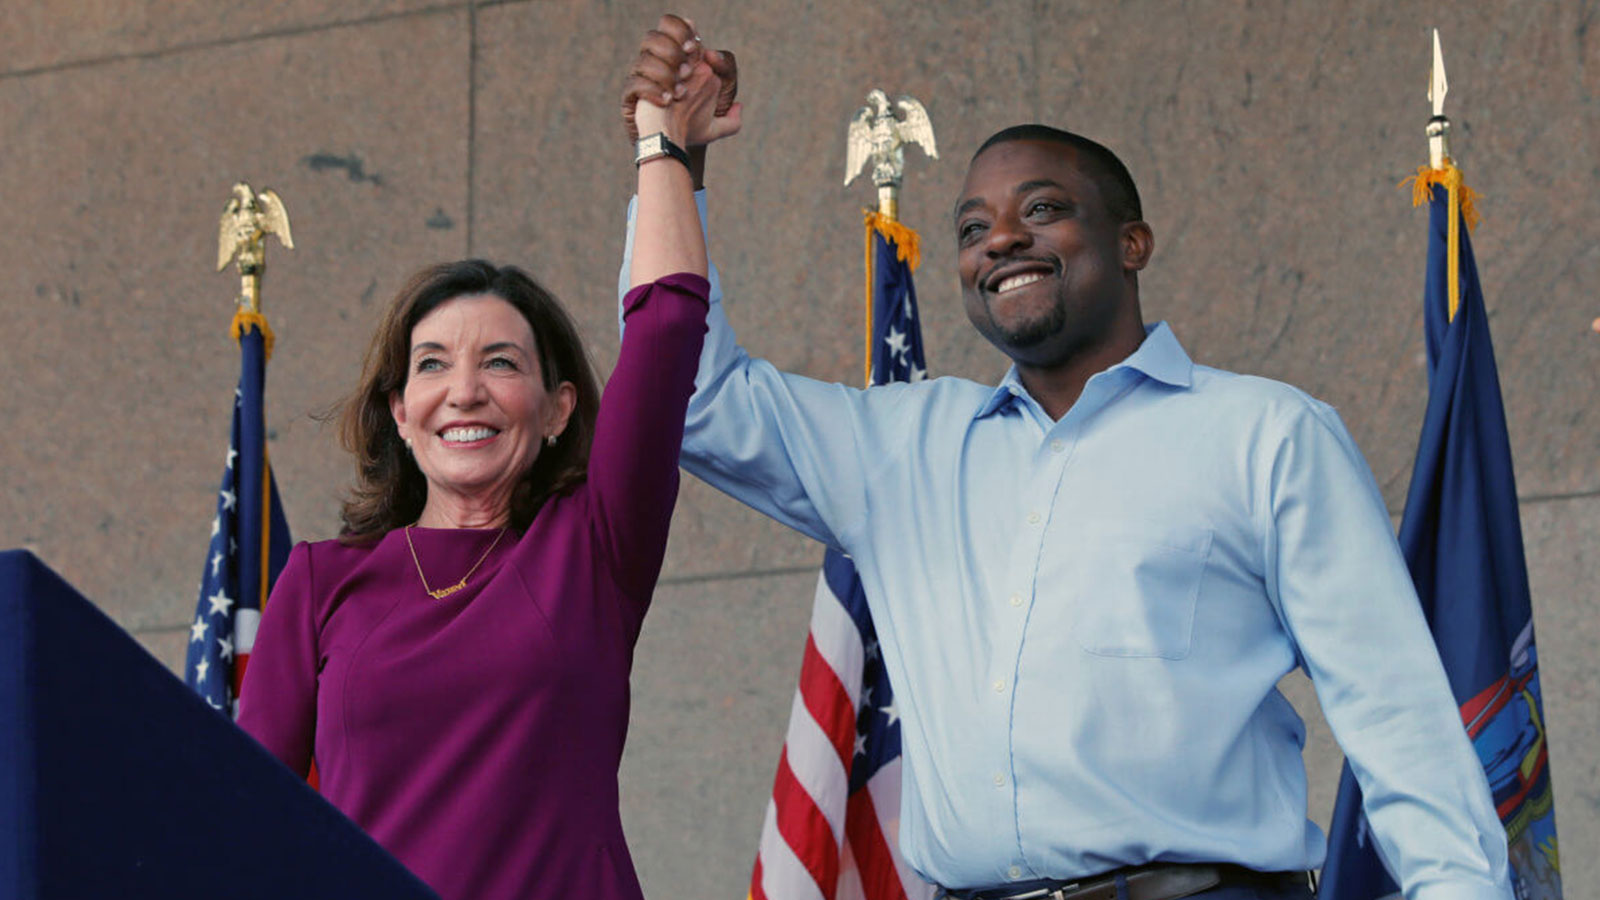 New York Governor Kathy Hochul appears with her choice for Lieutenant Governor, Democratic New York State Senator Brian Benjamin